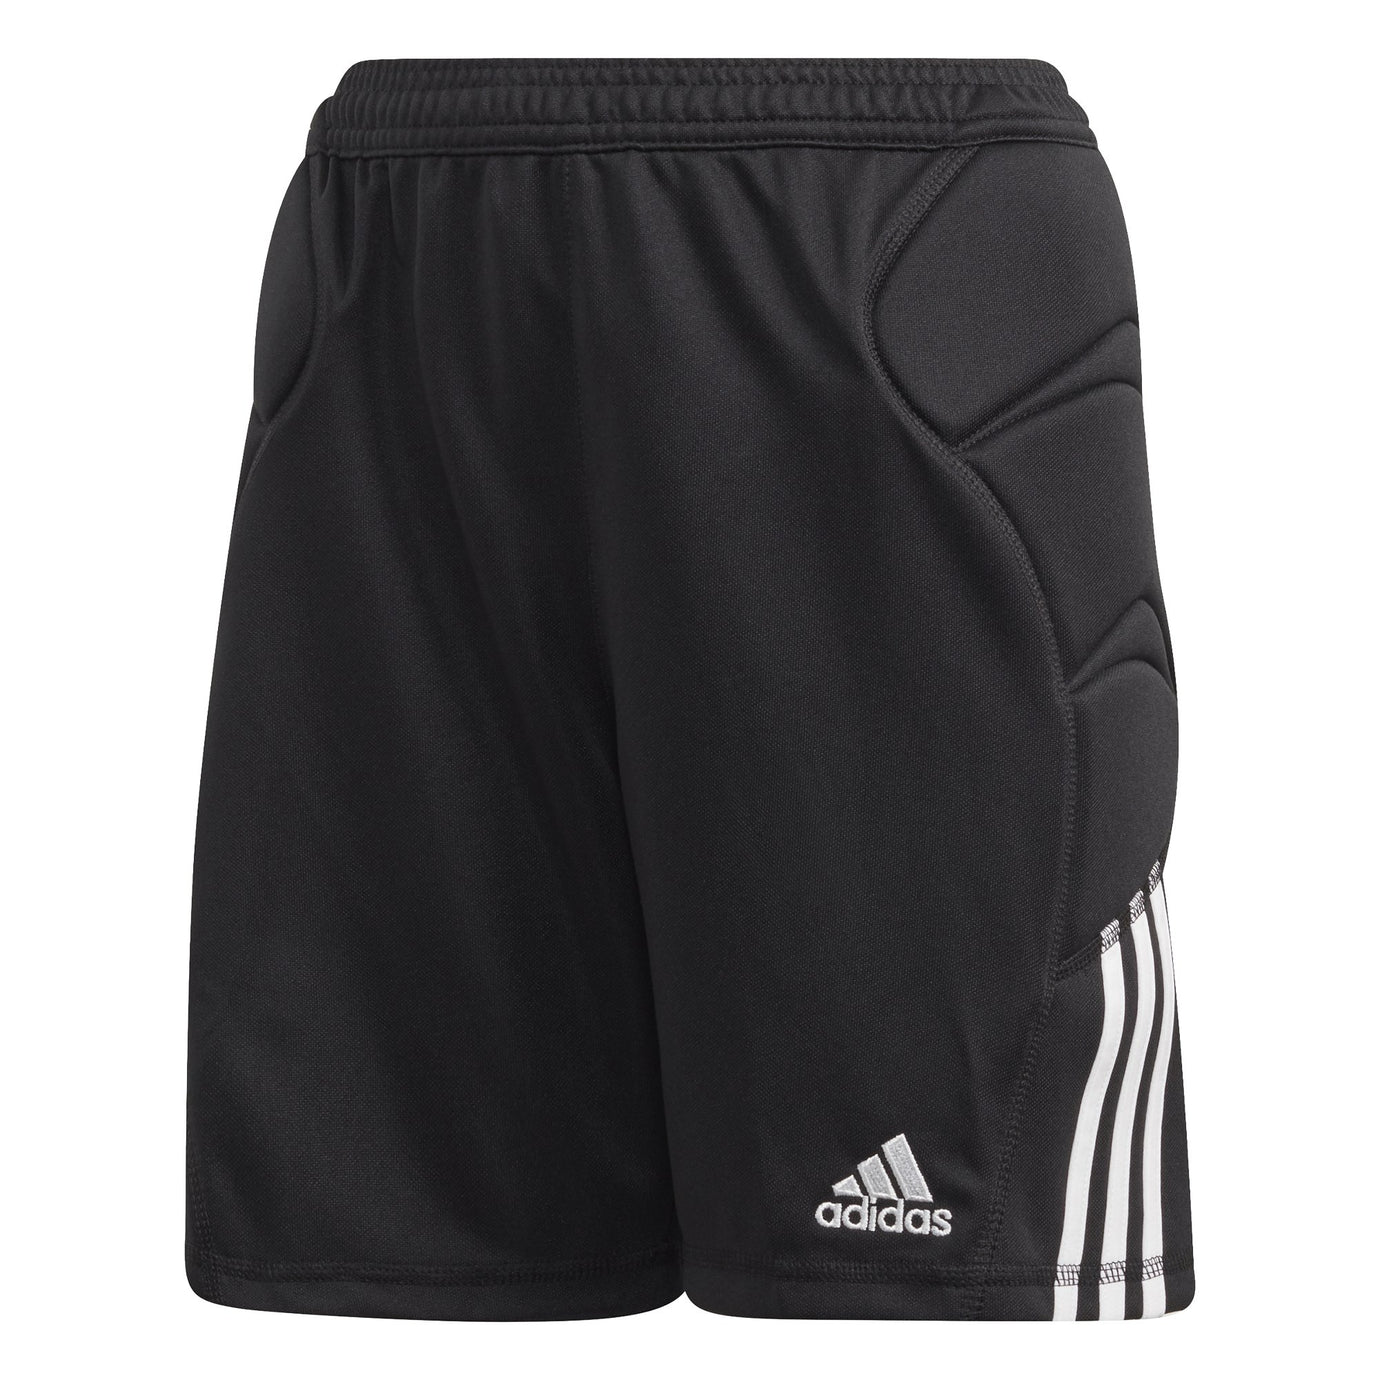 ADI JR TIERRO GK SHORT BLACK